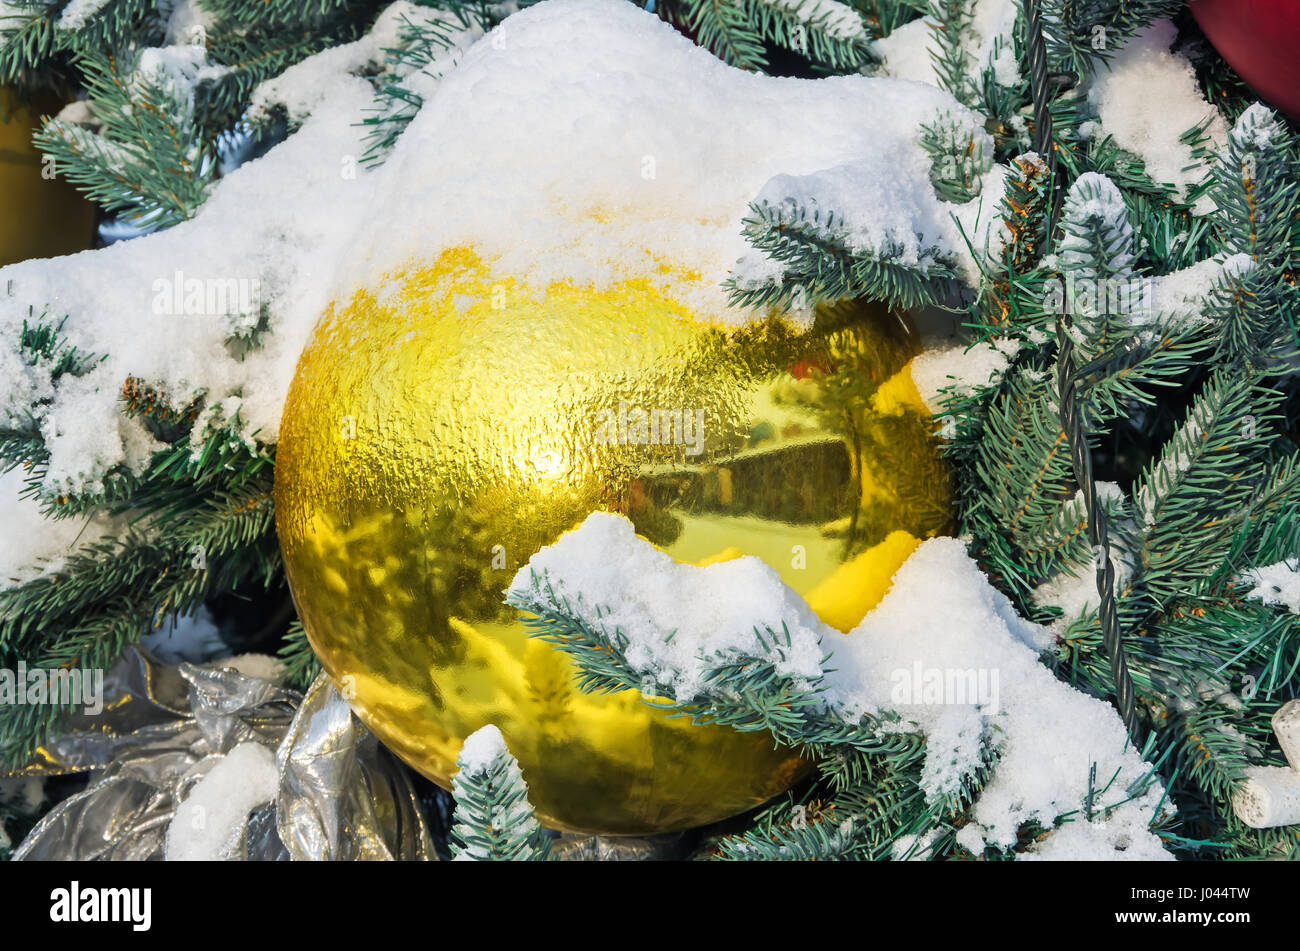 Spangled cold snow young spruce Christmas decorations in city park - Stock Image